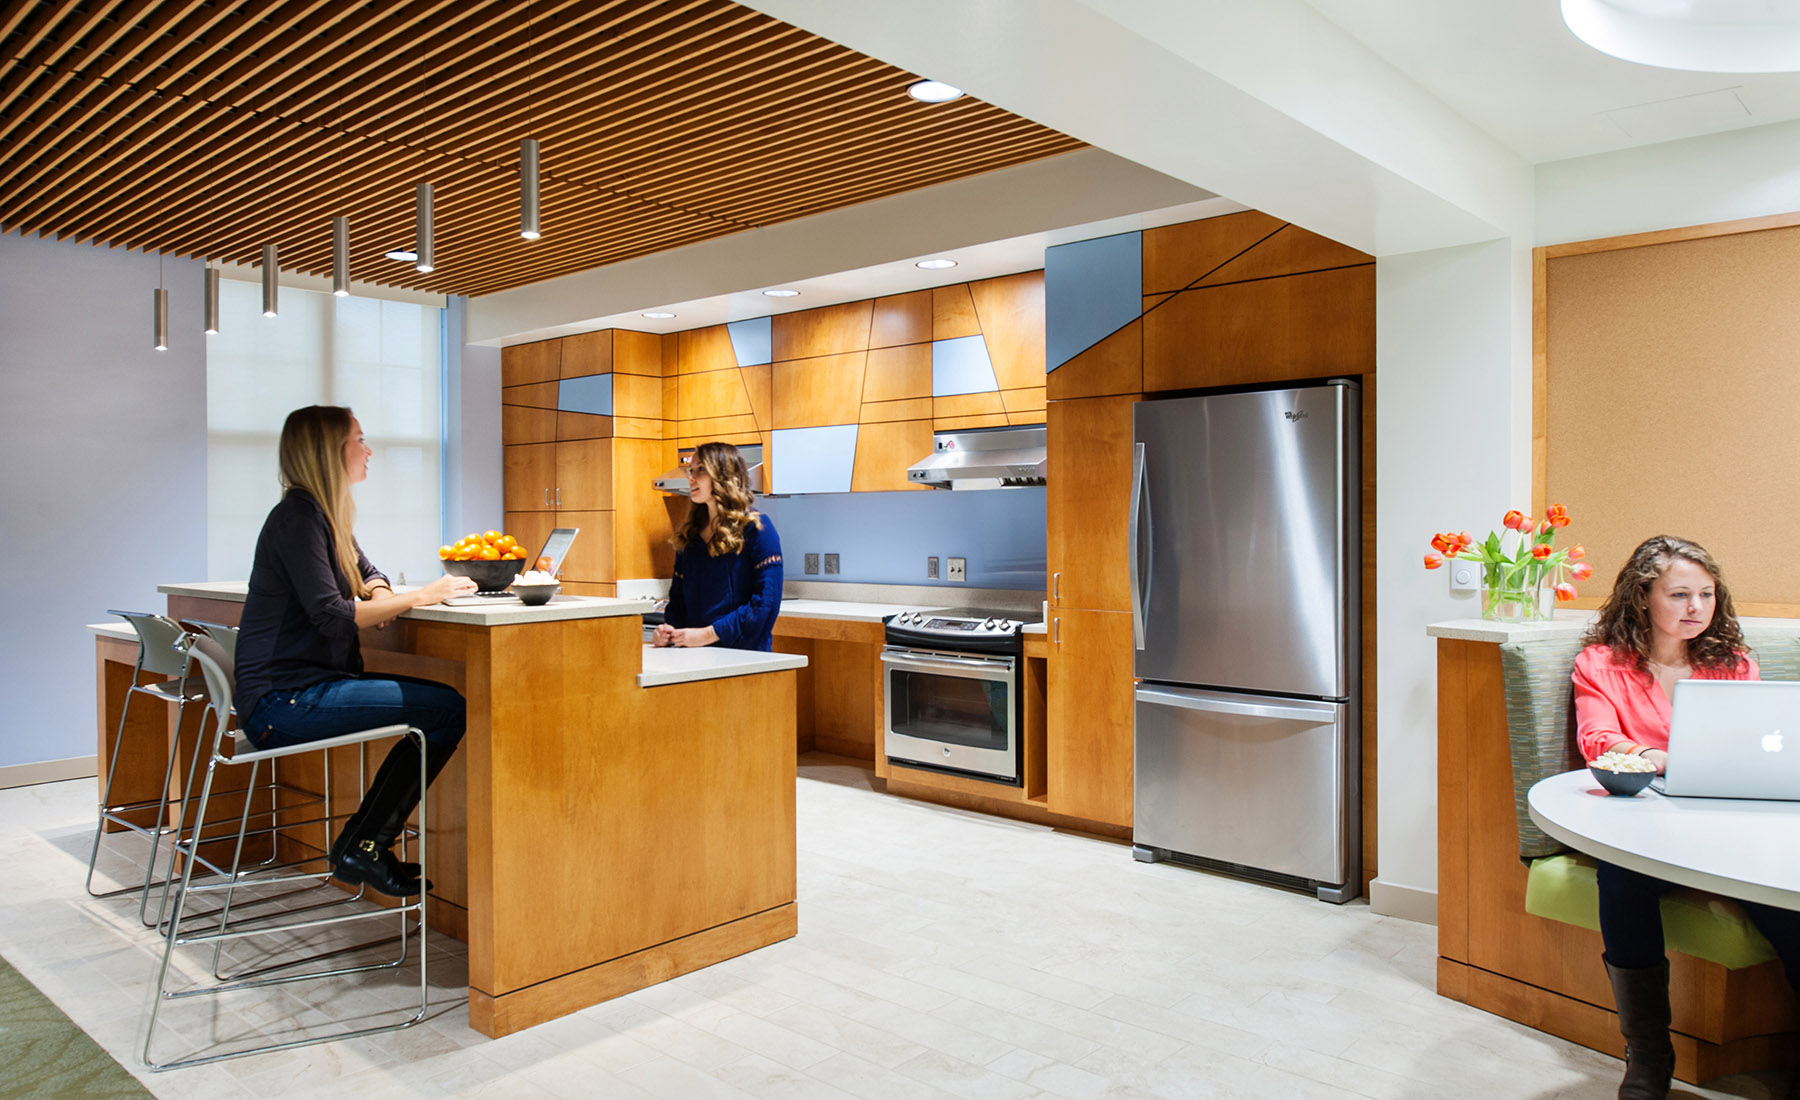 With open and connected lounge, kitchen, laundry and study space, the building's common spaces inspire students to socialize, study, collaborate, and form bonds that expand beyond the independent sororities.